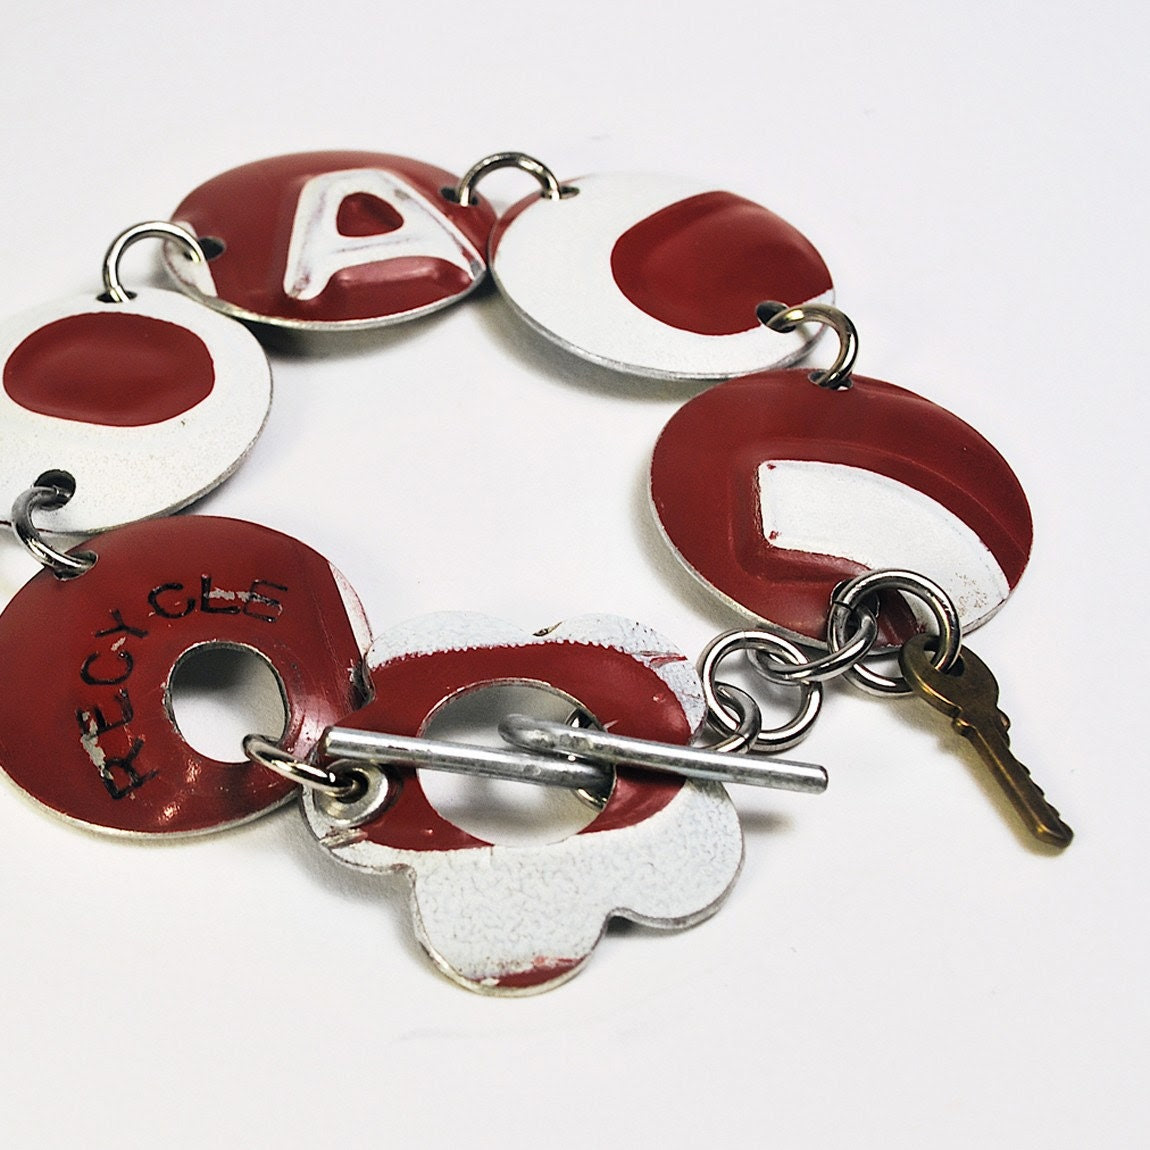 Recycled Jewelry Circle Bracelet from Upcycled License Plates